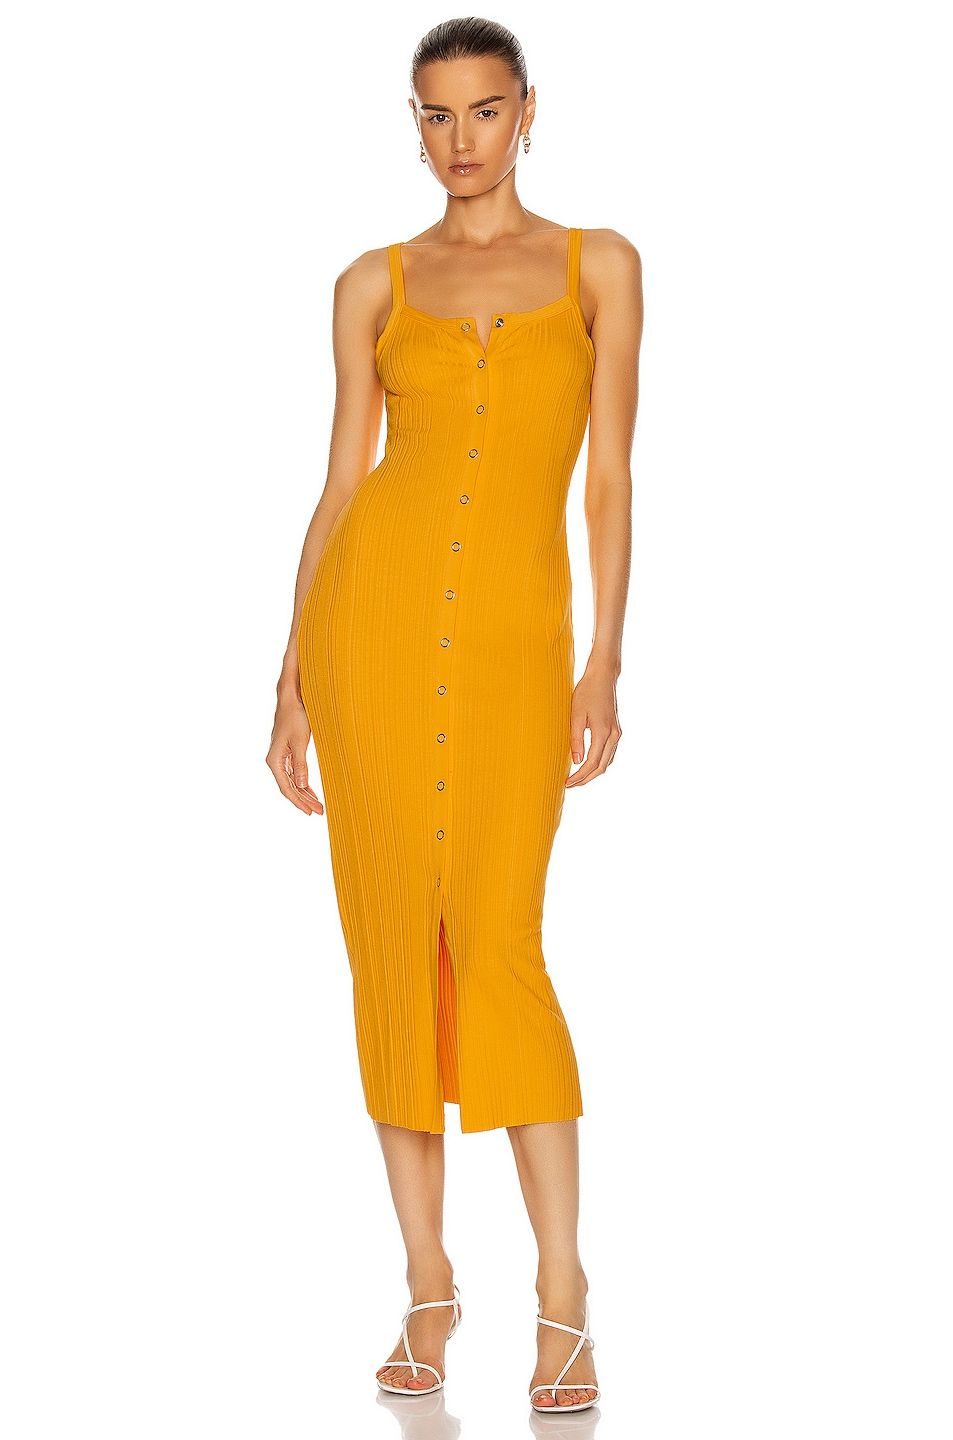 Image 1 of The Range Buttoned Up Midi Dress in Glow